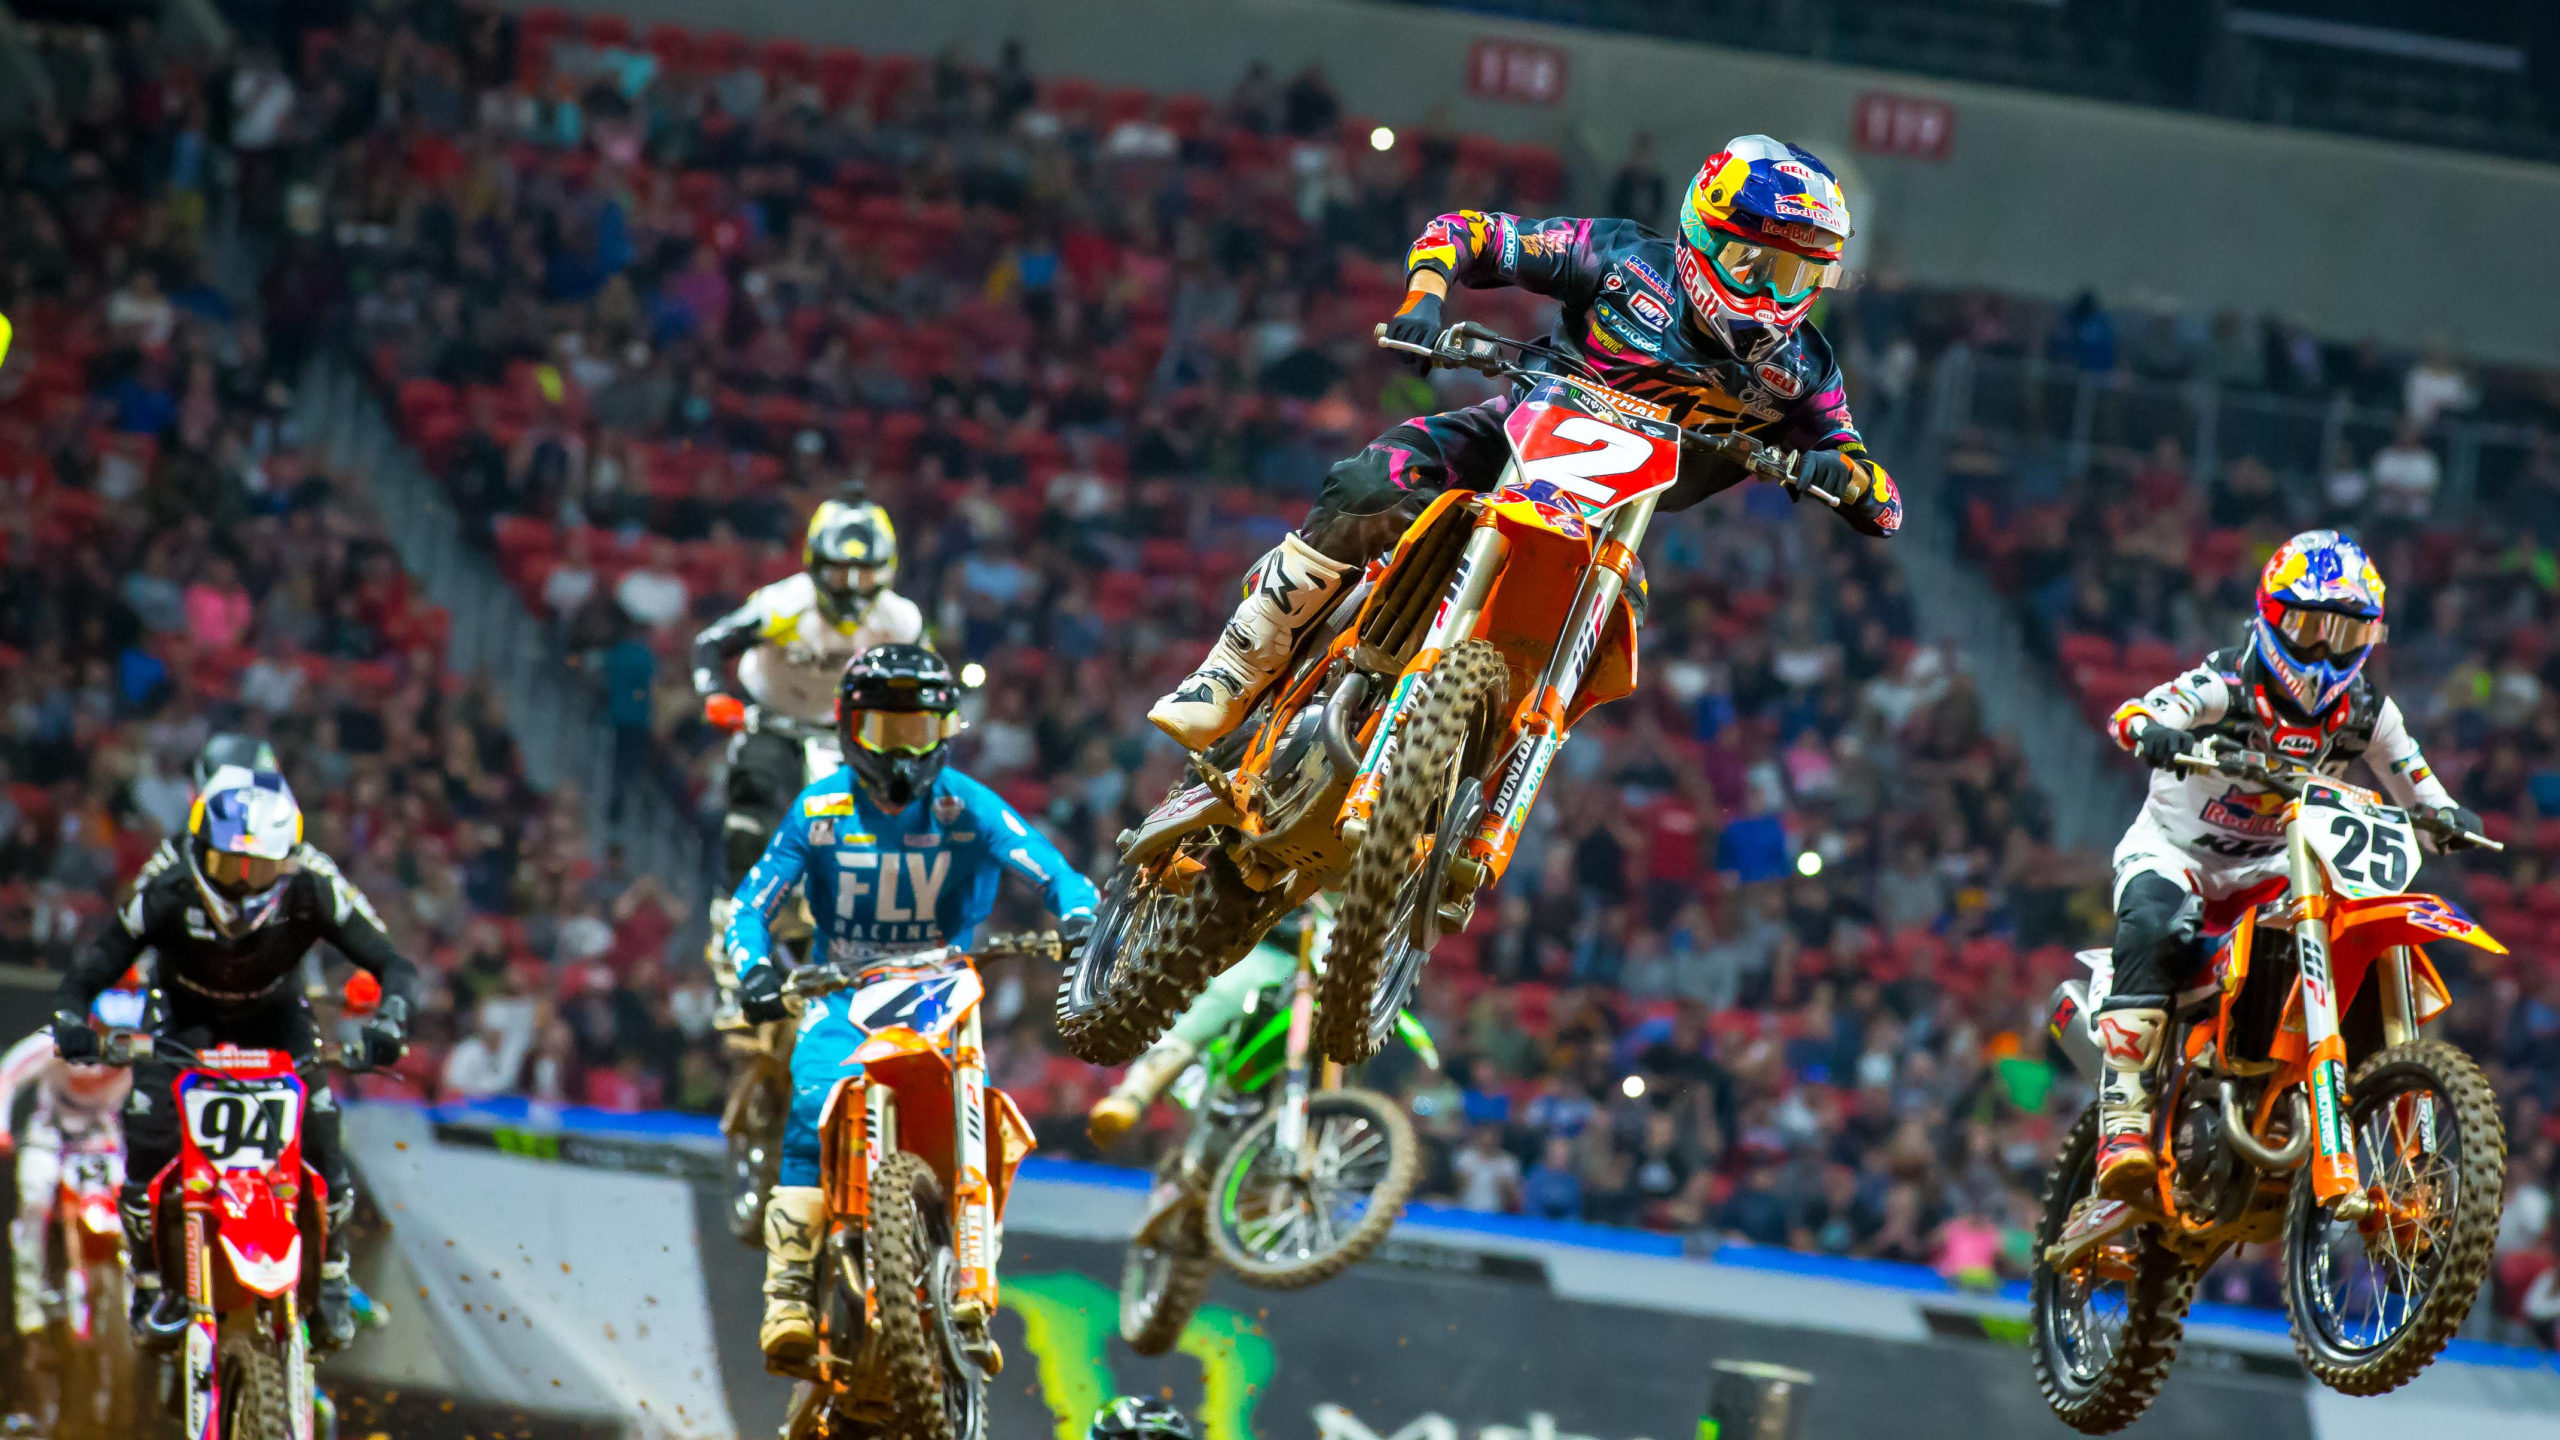 AMA SUPERCROSS 2020 DAYTONA DETAILED SCHEDULE